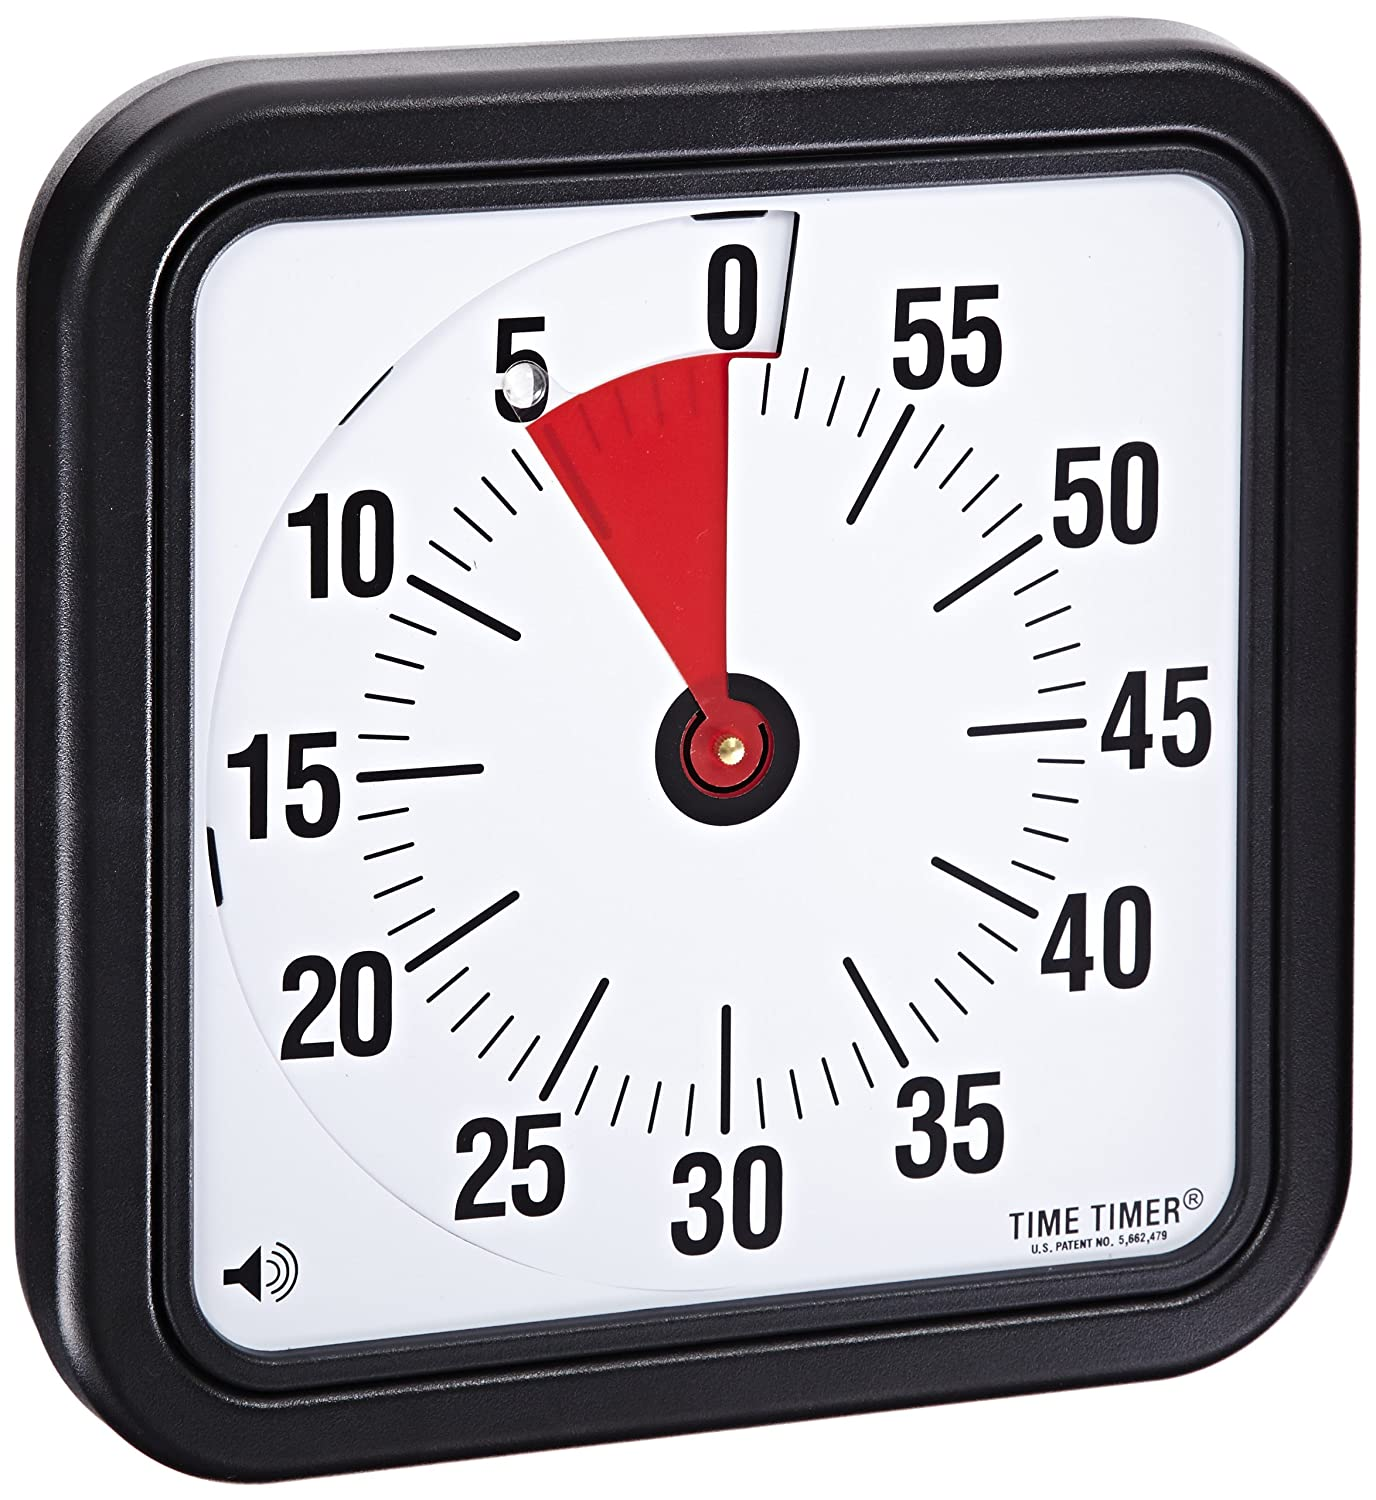 Amazon.com: Time Timer Audible Countdown Timer - 12 inch - Black ...